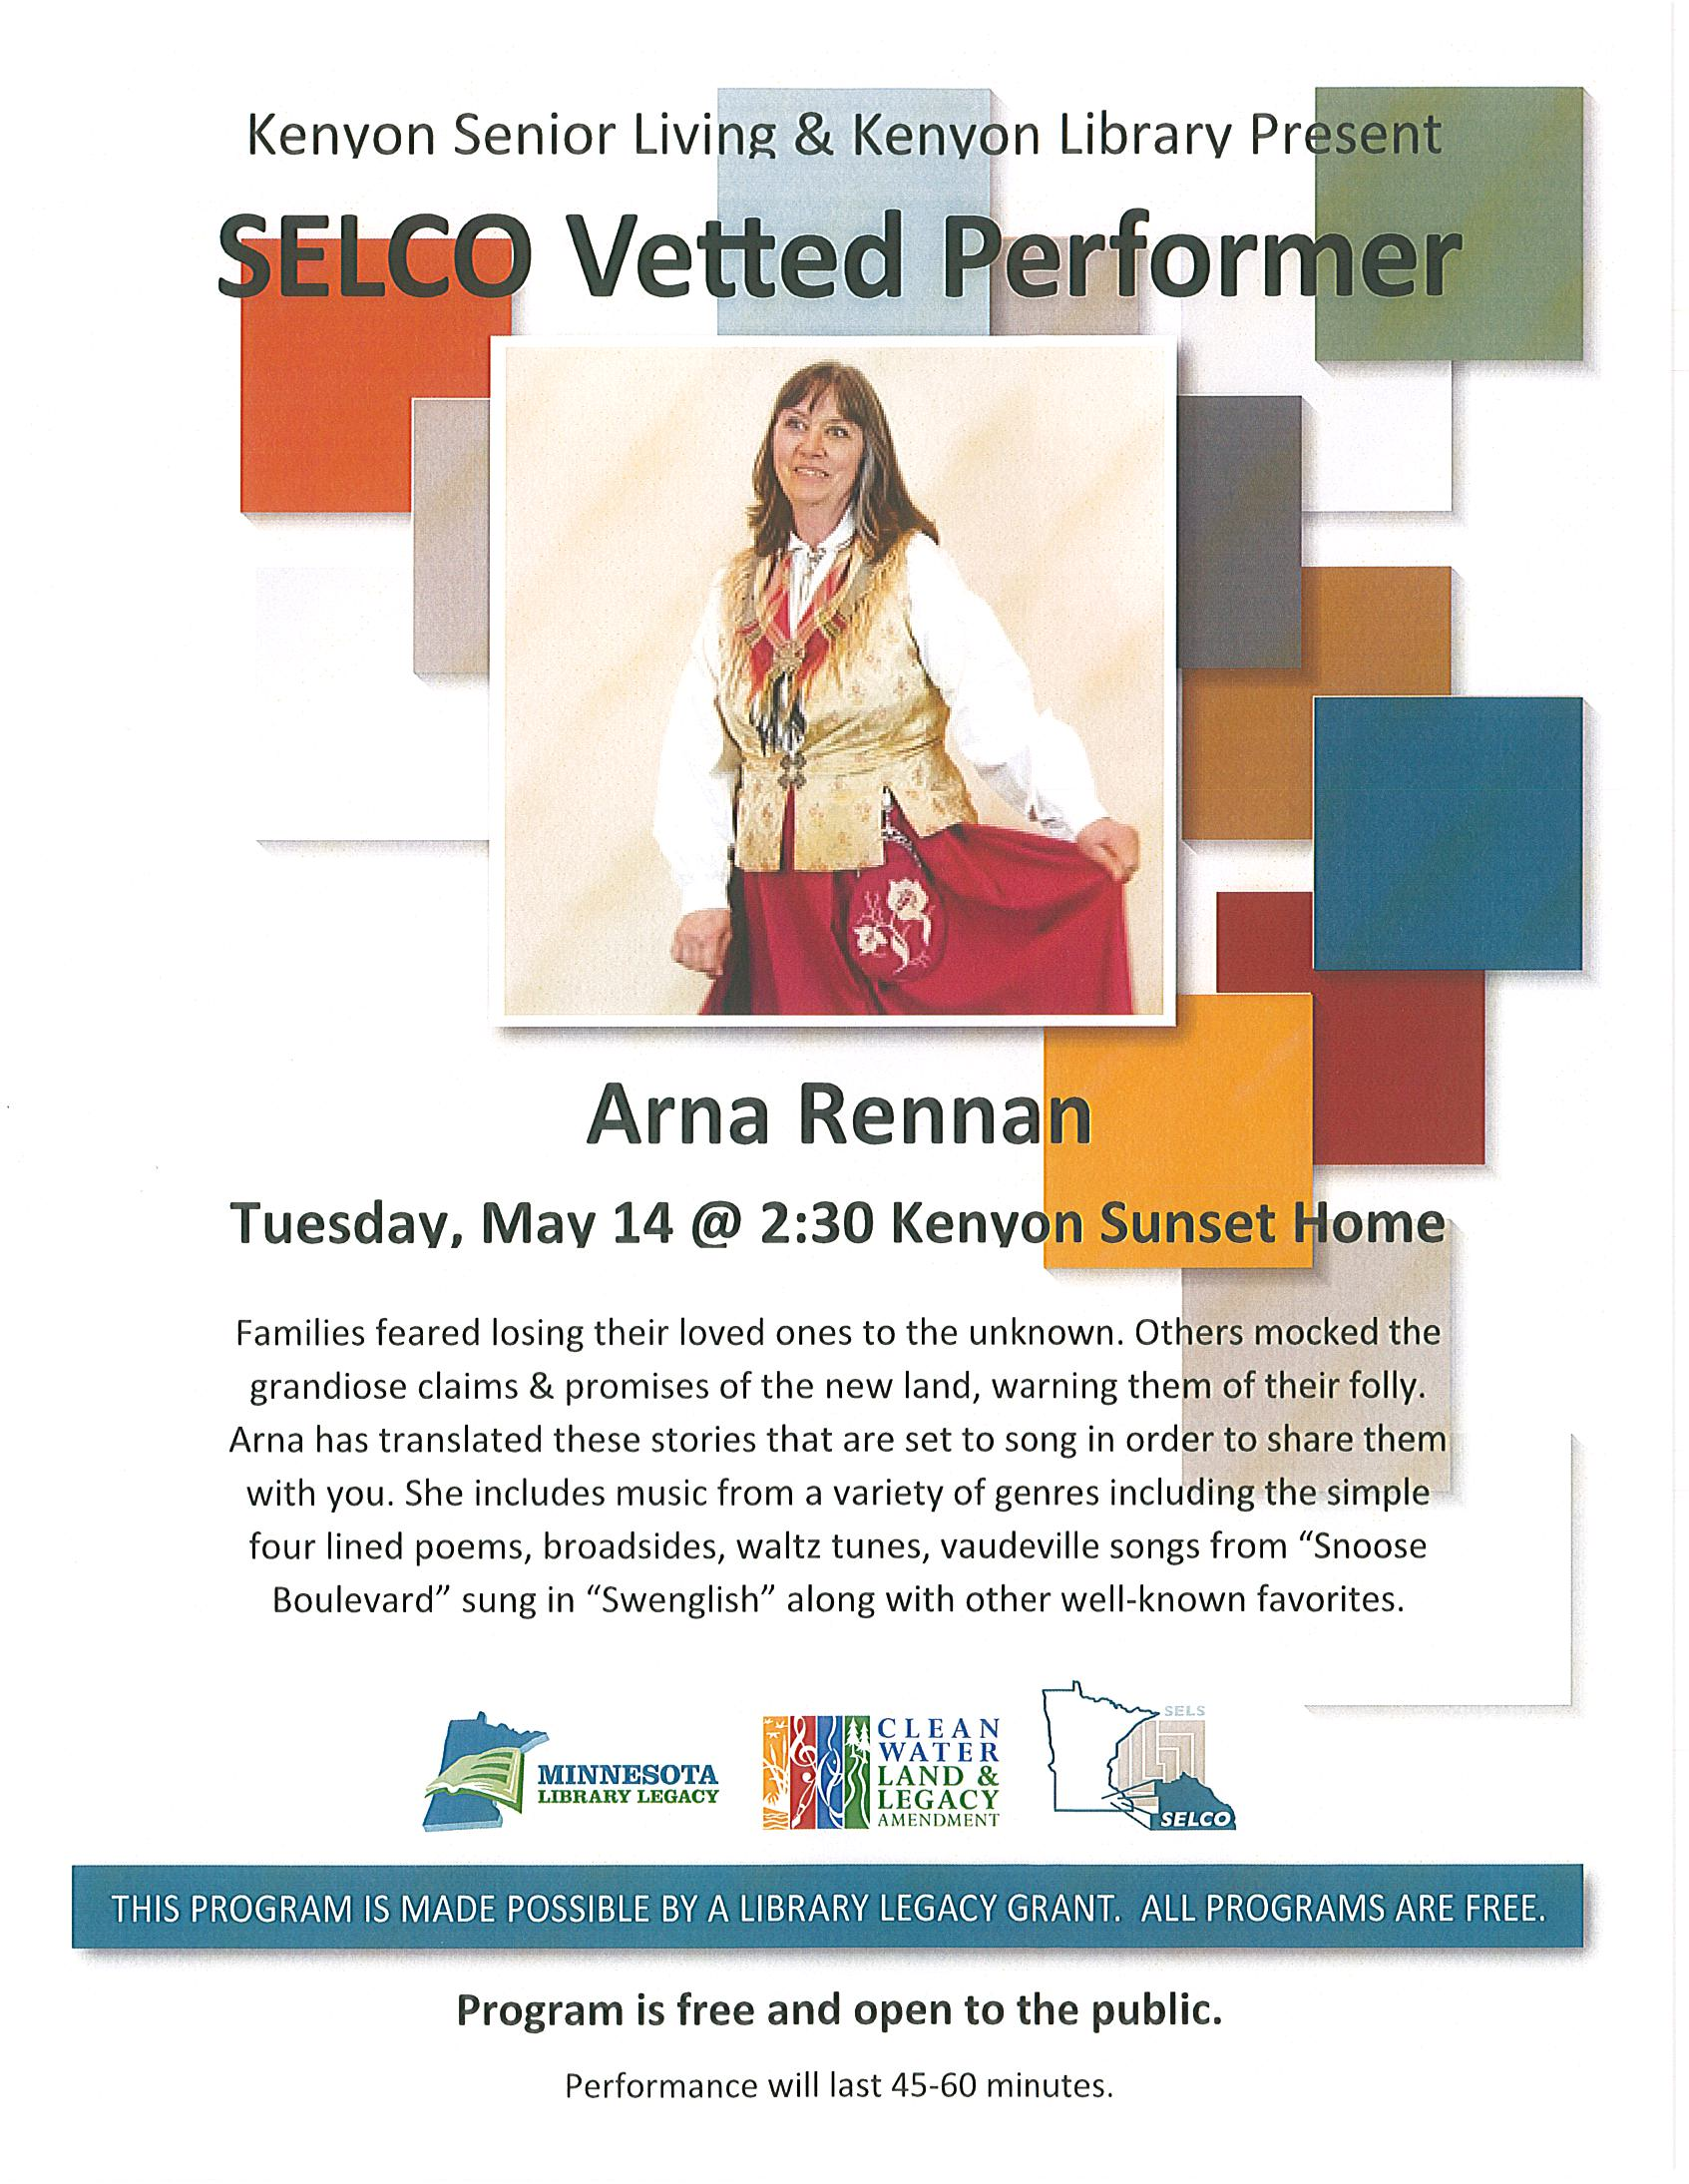 Arna Rennan: Scandinavian Storytelling & Song May 14 at 2:30 pm Kenyon Sunset Home